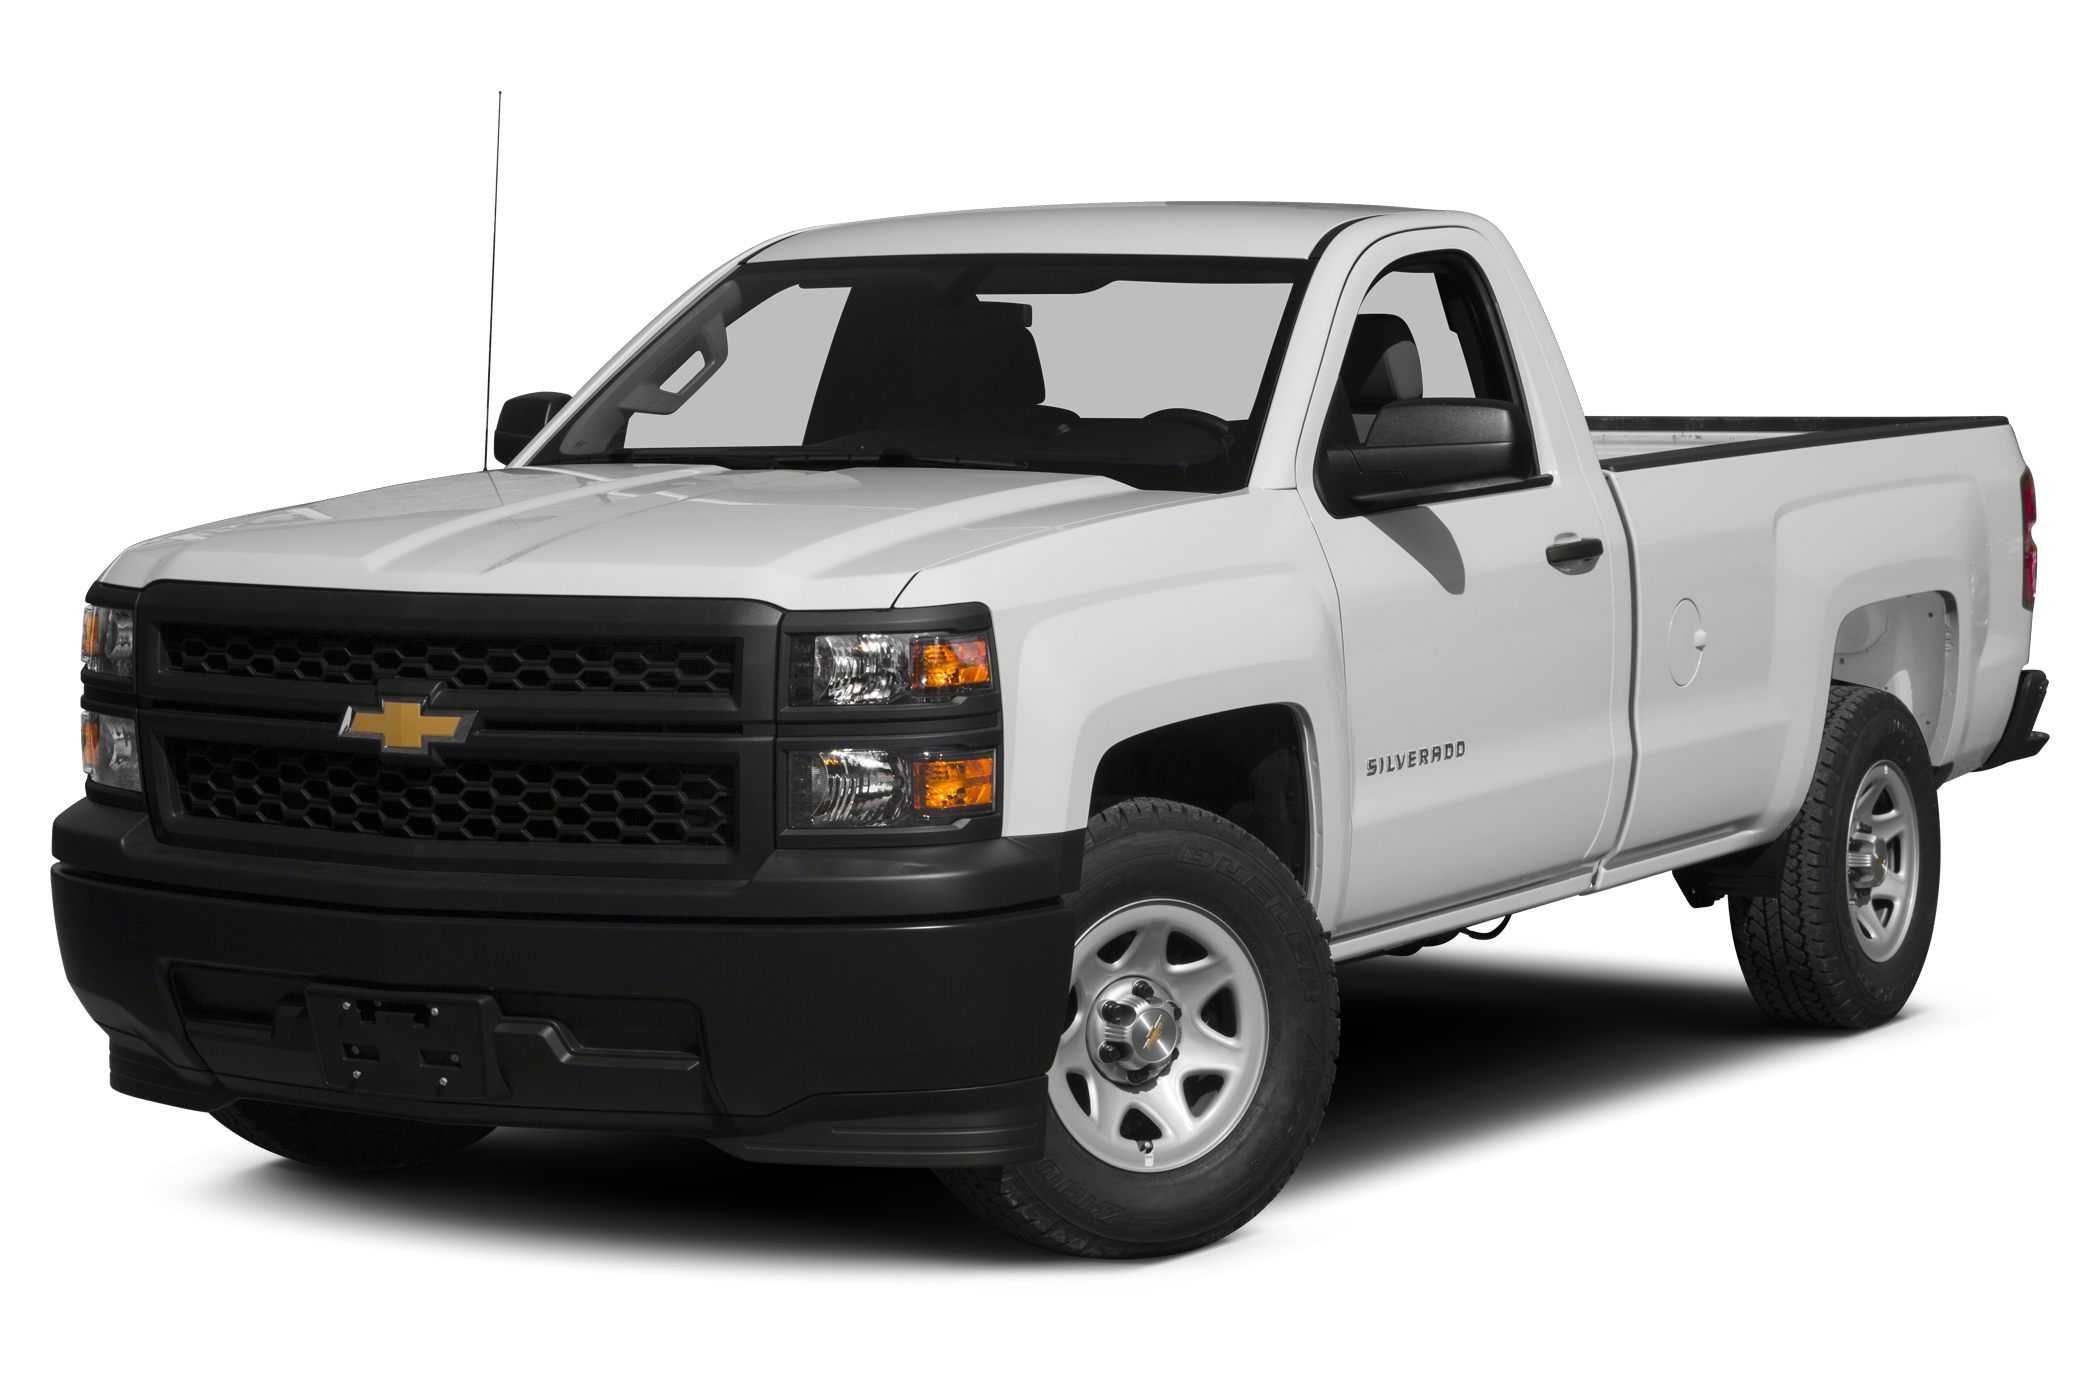 2014 Chevrolet Silverado 1500 1LT Crew Cab Pickup for sale in Superior for $41,690 with 0 miles